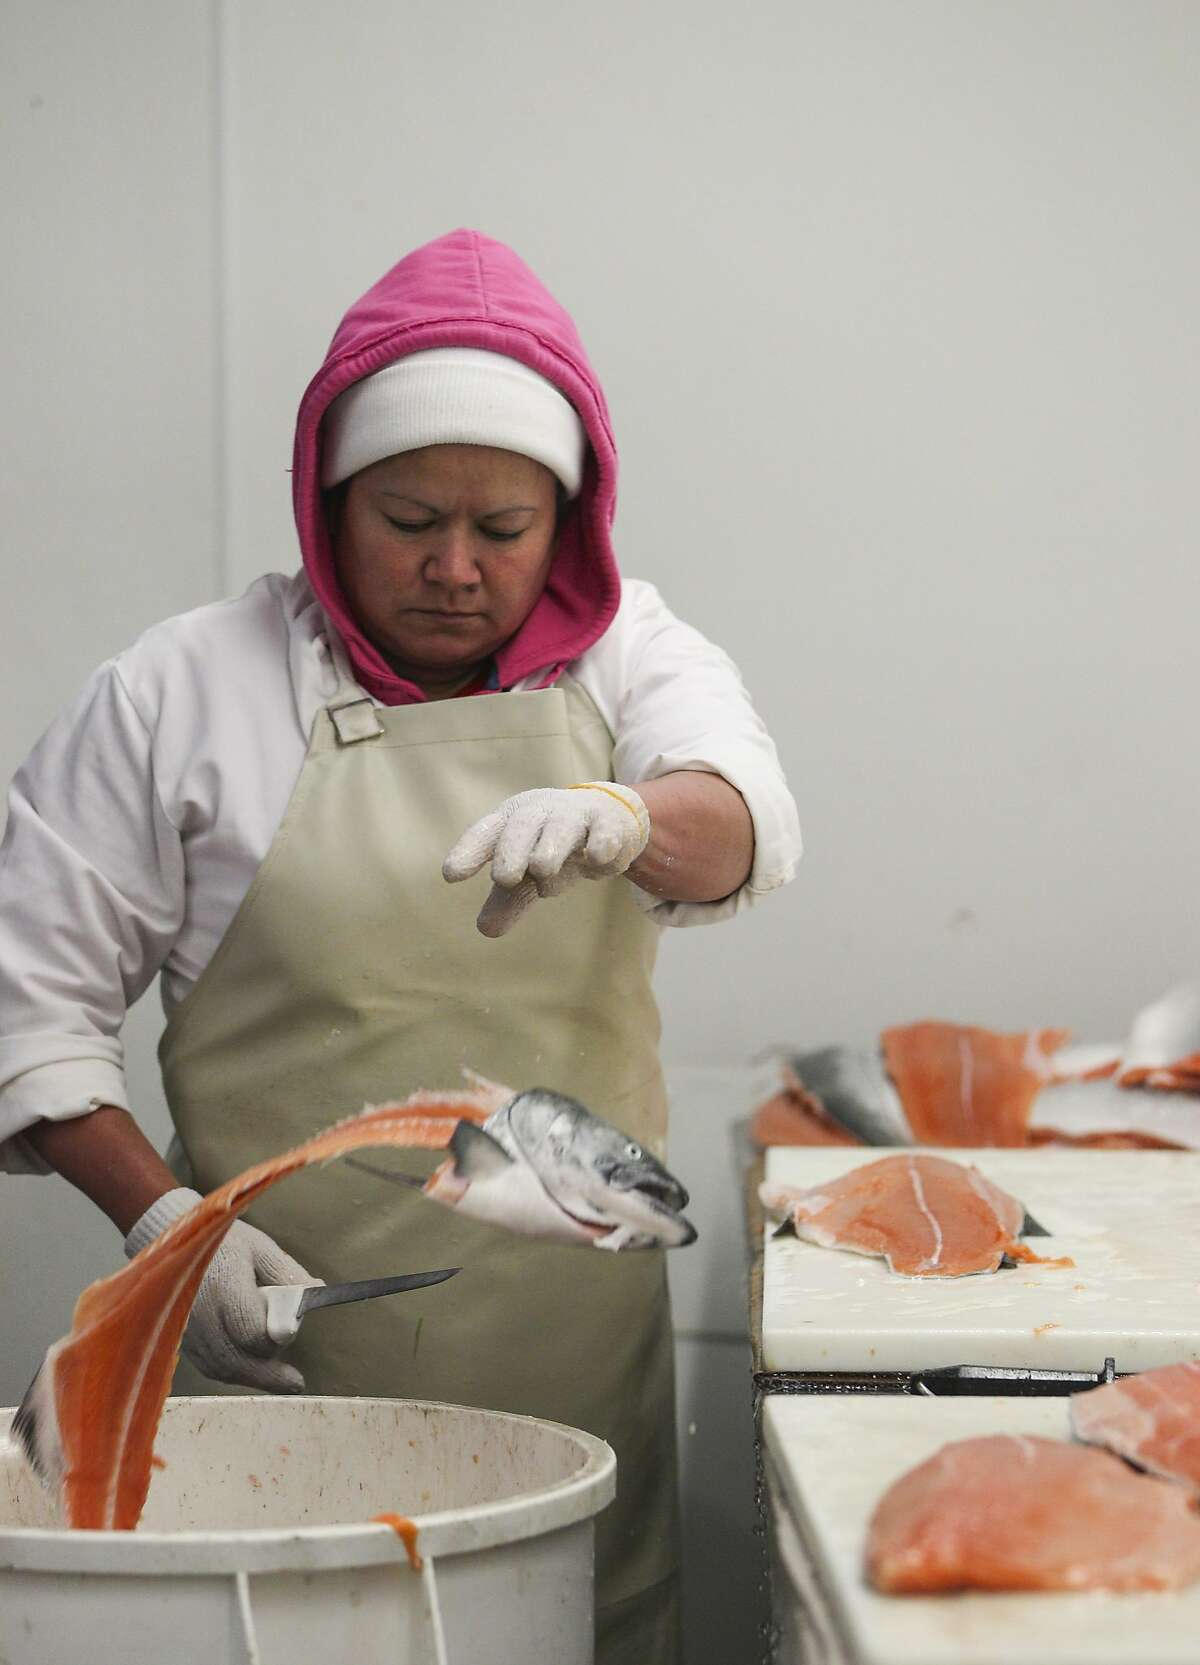 """Maria Victoria Flores de Garcia fillets wild king salmon at the North Coast Fisheries processing plant in Santa Rosa, California, on Friday, July 17, 2015. Siren Fish Company, owned by Anna Larsen, has its fish processed at North Coast Fisheries. Siren Fish Company specializes in providing locally caught, sustainable fish to its """"CSF"""" members on a weekly basis."""